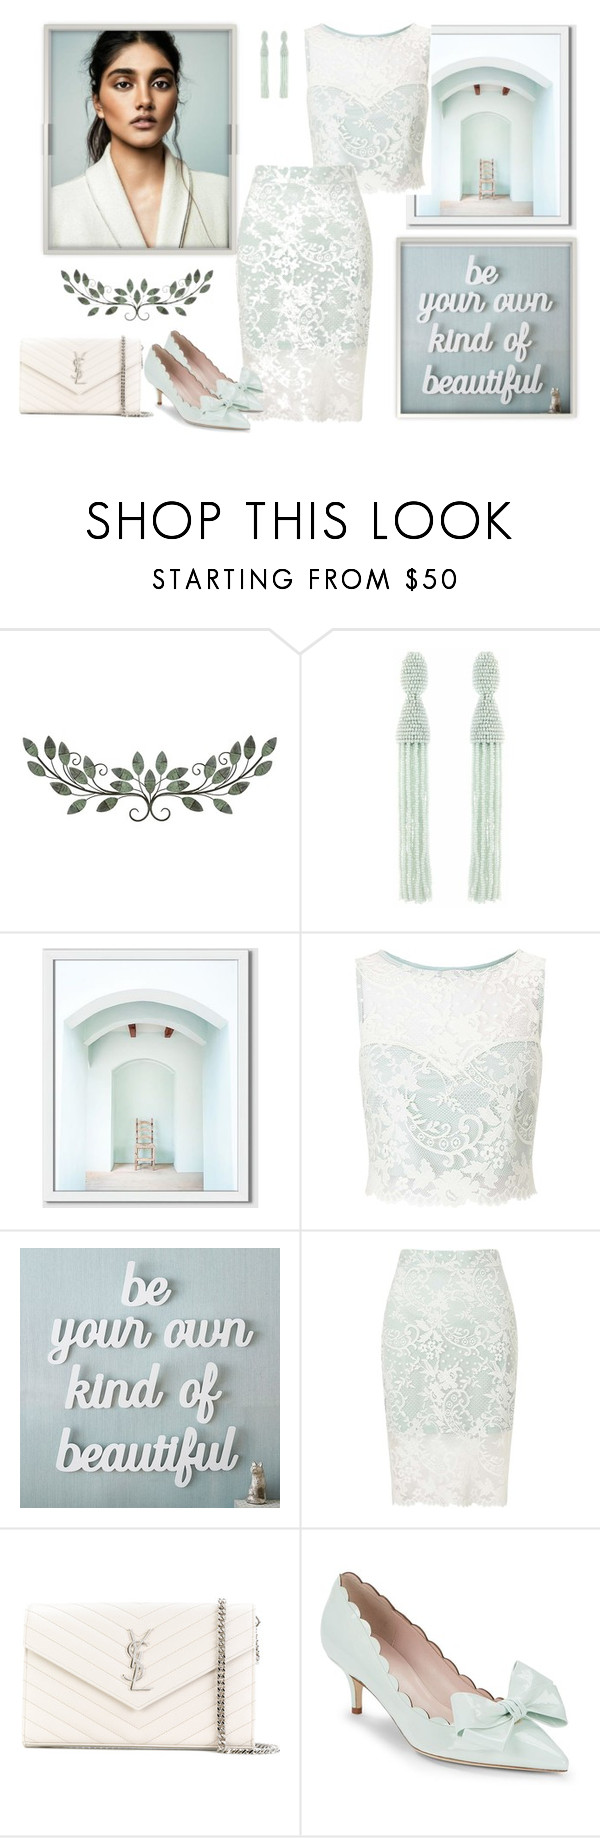 """Untitled #1700"" by jothomas ❤ liked on Polyvore featuring Oscar de la Renta, West Elm, Miss Selfridge, PBteen, Yves Saint Laurent and Kate Spade"